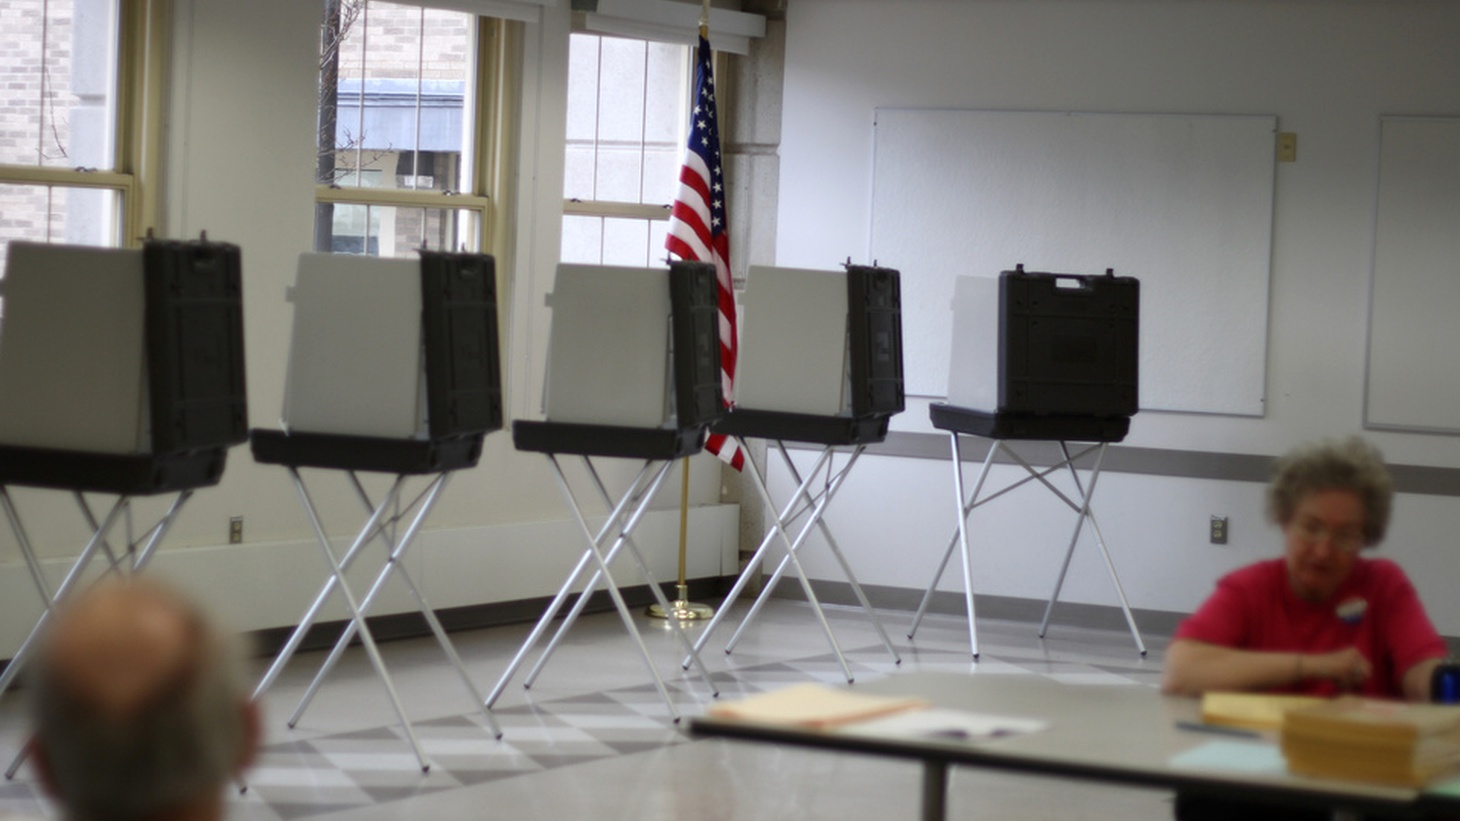 Even before the polls opened in today's coast-to-coast primaries, the  Associated Press has already declared Clinton to be the Democratic nominee . It's based on a poll of super delegates who won't vote until the convention. Will the prediction affect today's turnout? What should the media do?     Photo:  Sage Ross